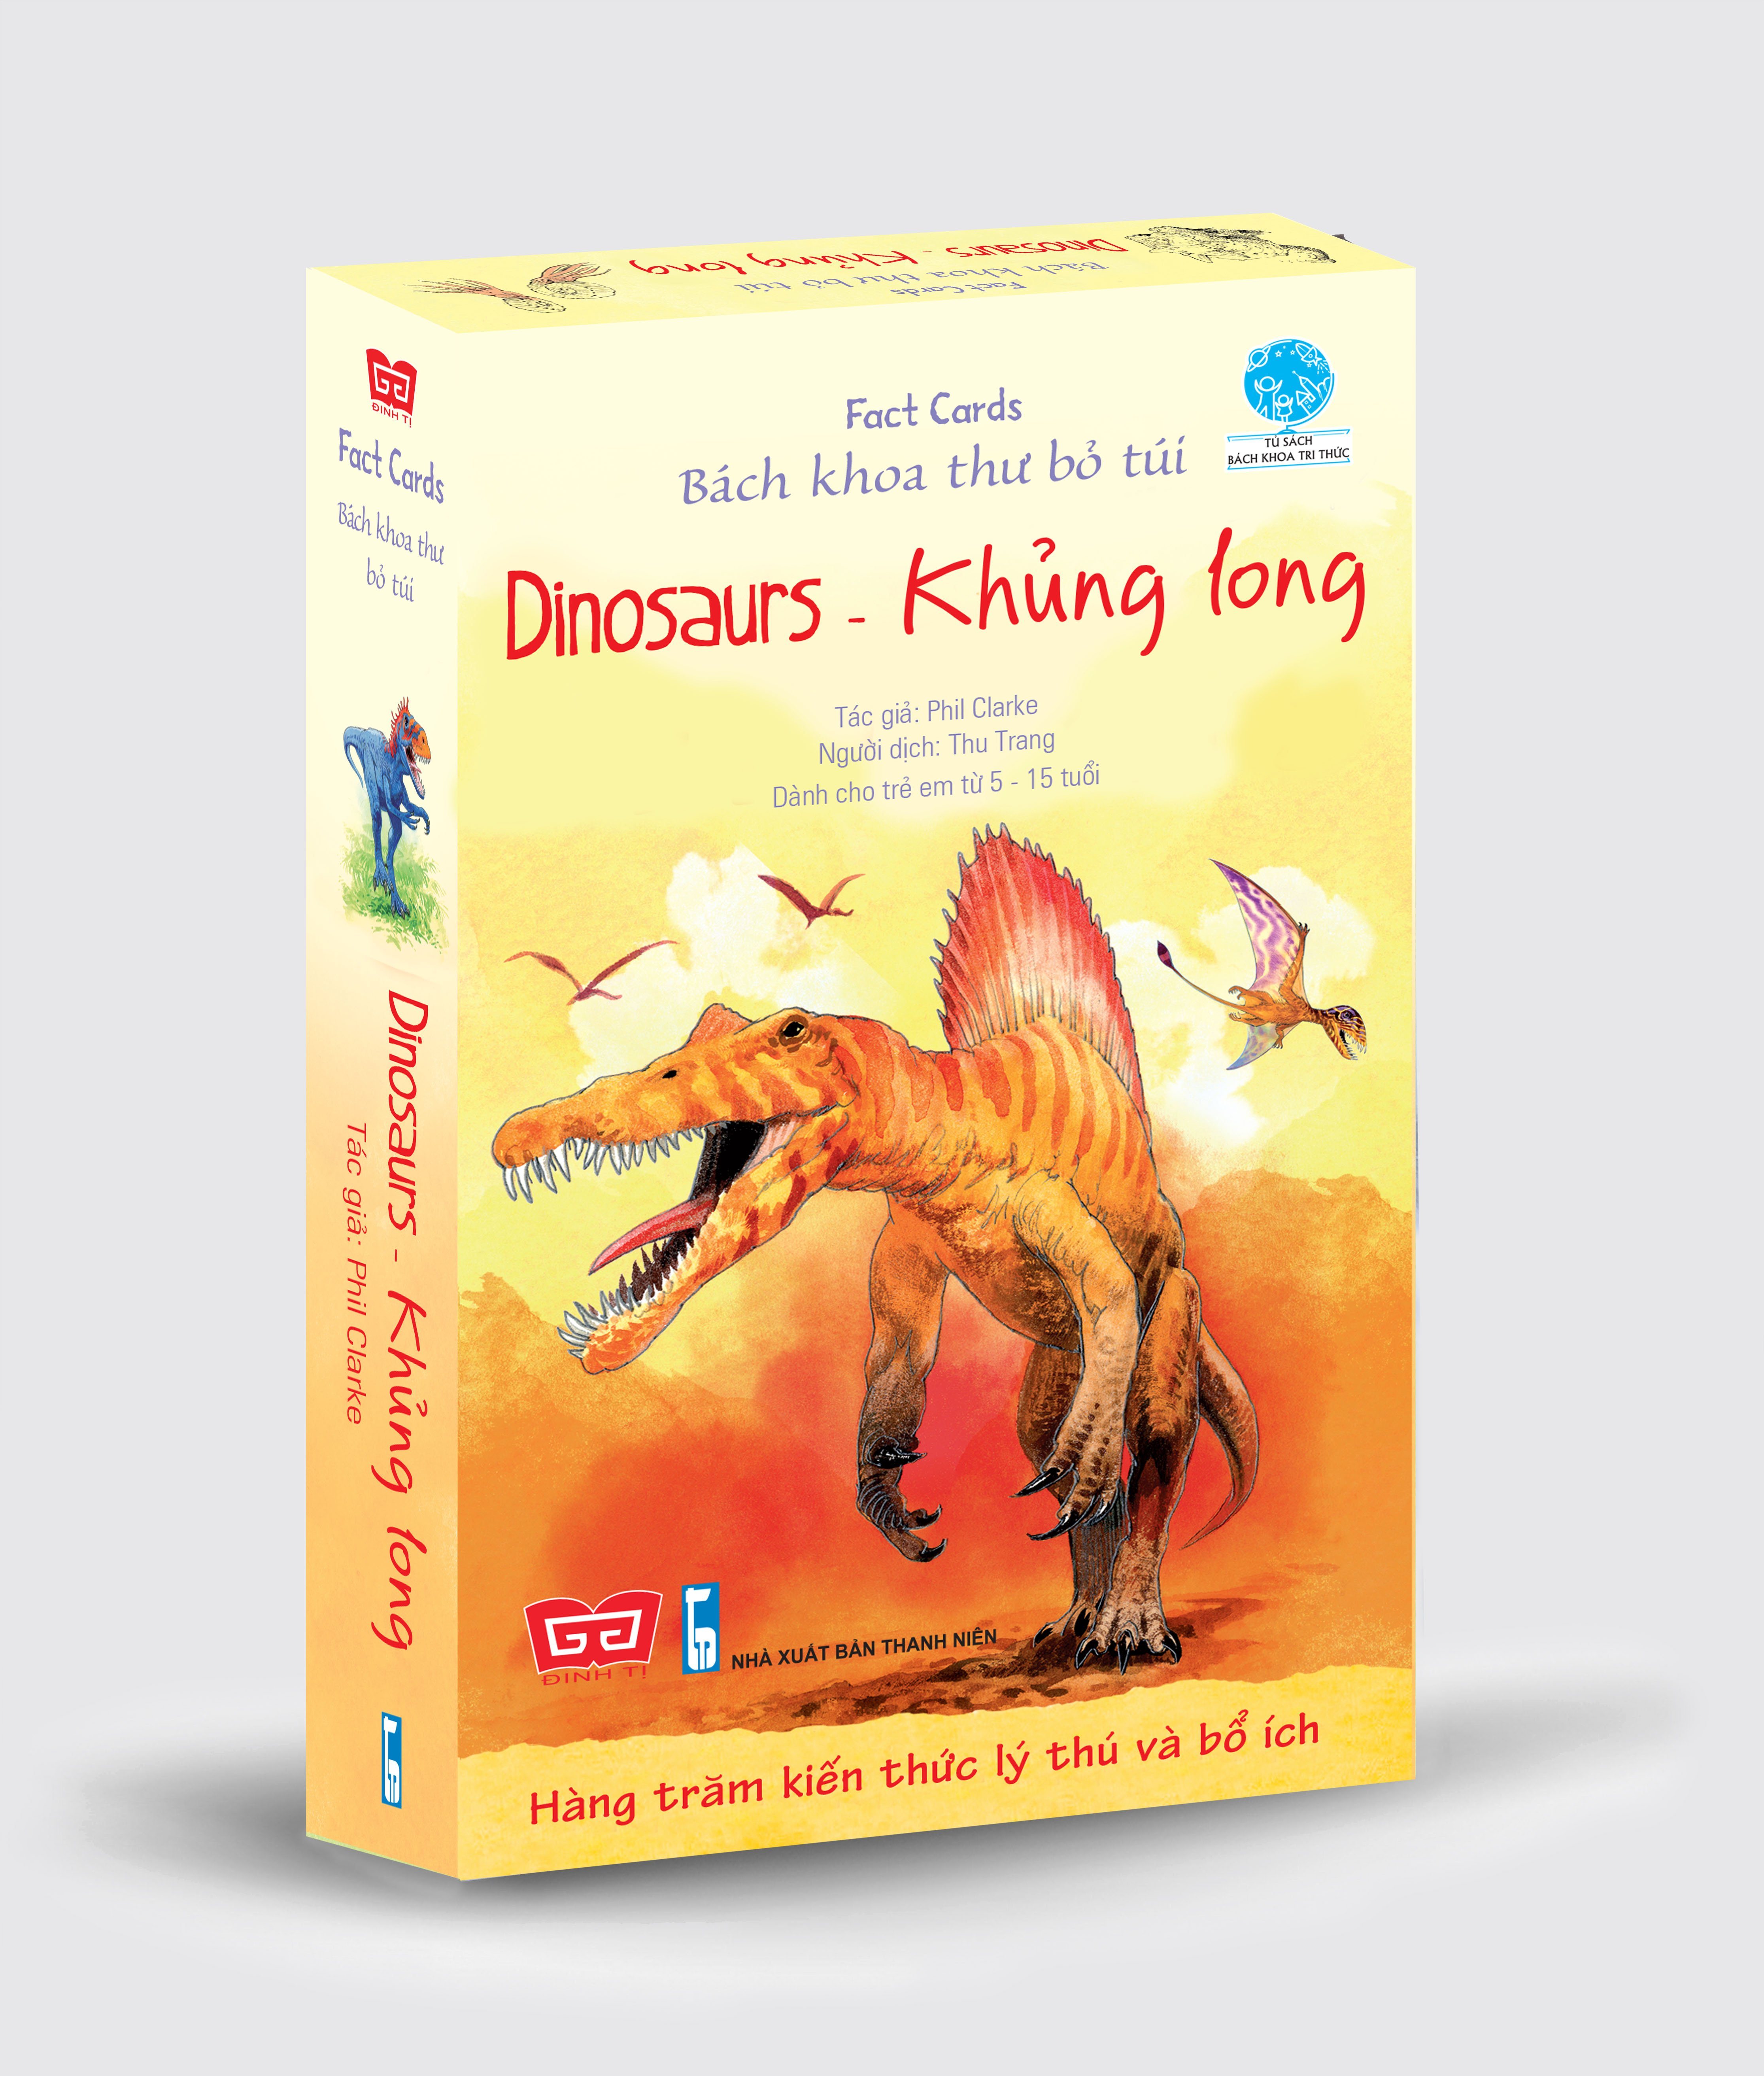 Fact cards - Bách khoa thư bỏ túi - Dinosaurs - Khủng long